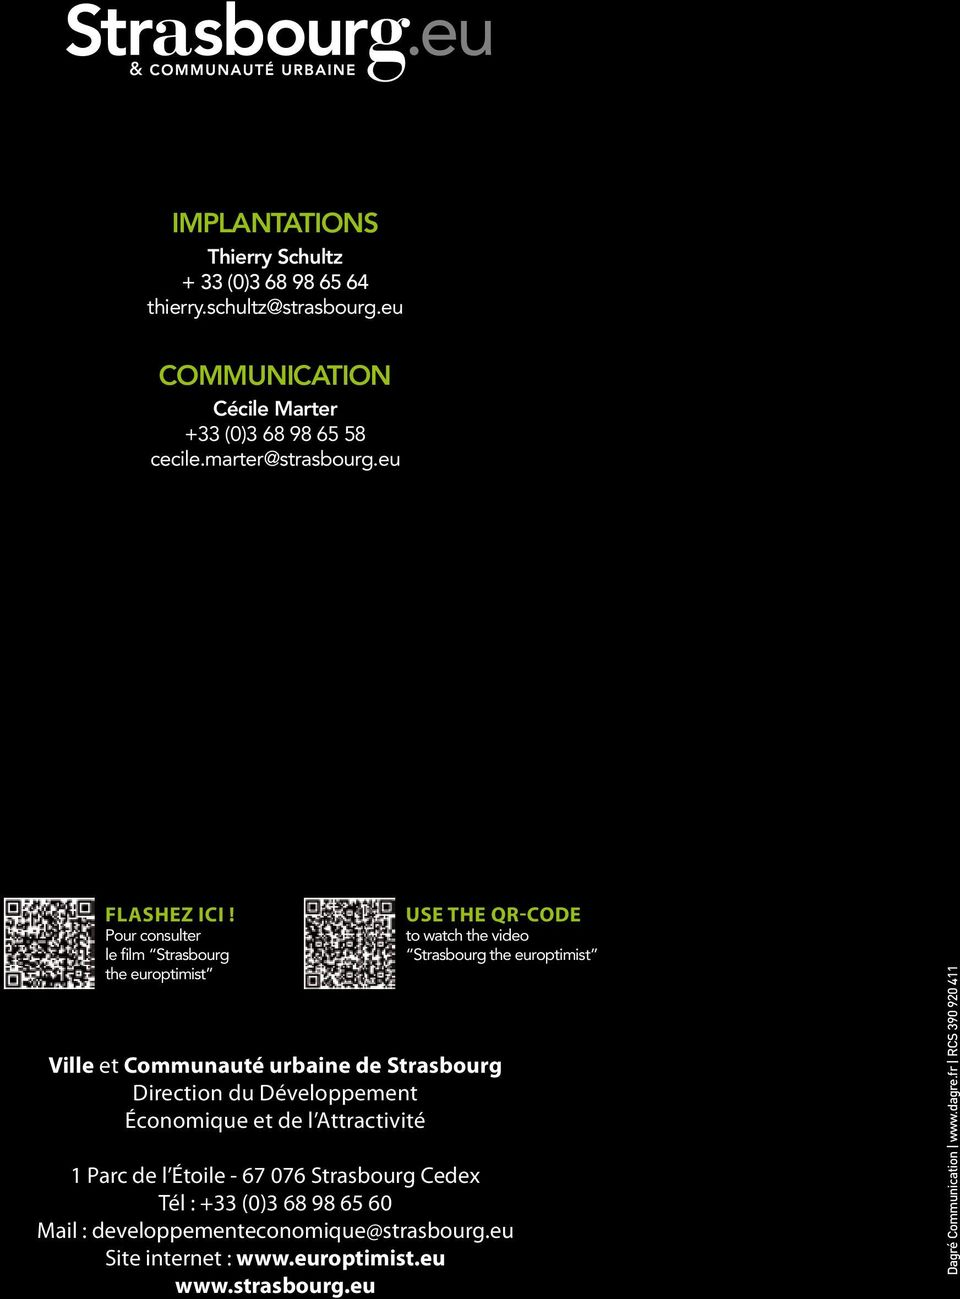 Pour consulter film Strasbourg the europtimist SE THE QR-CODE to watch the video Strasbourg the europtimist Vil et Communauté urbaine de